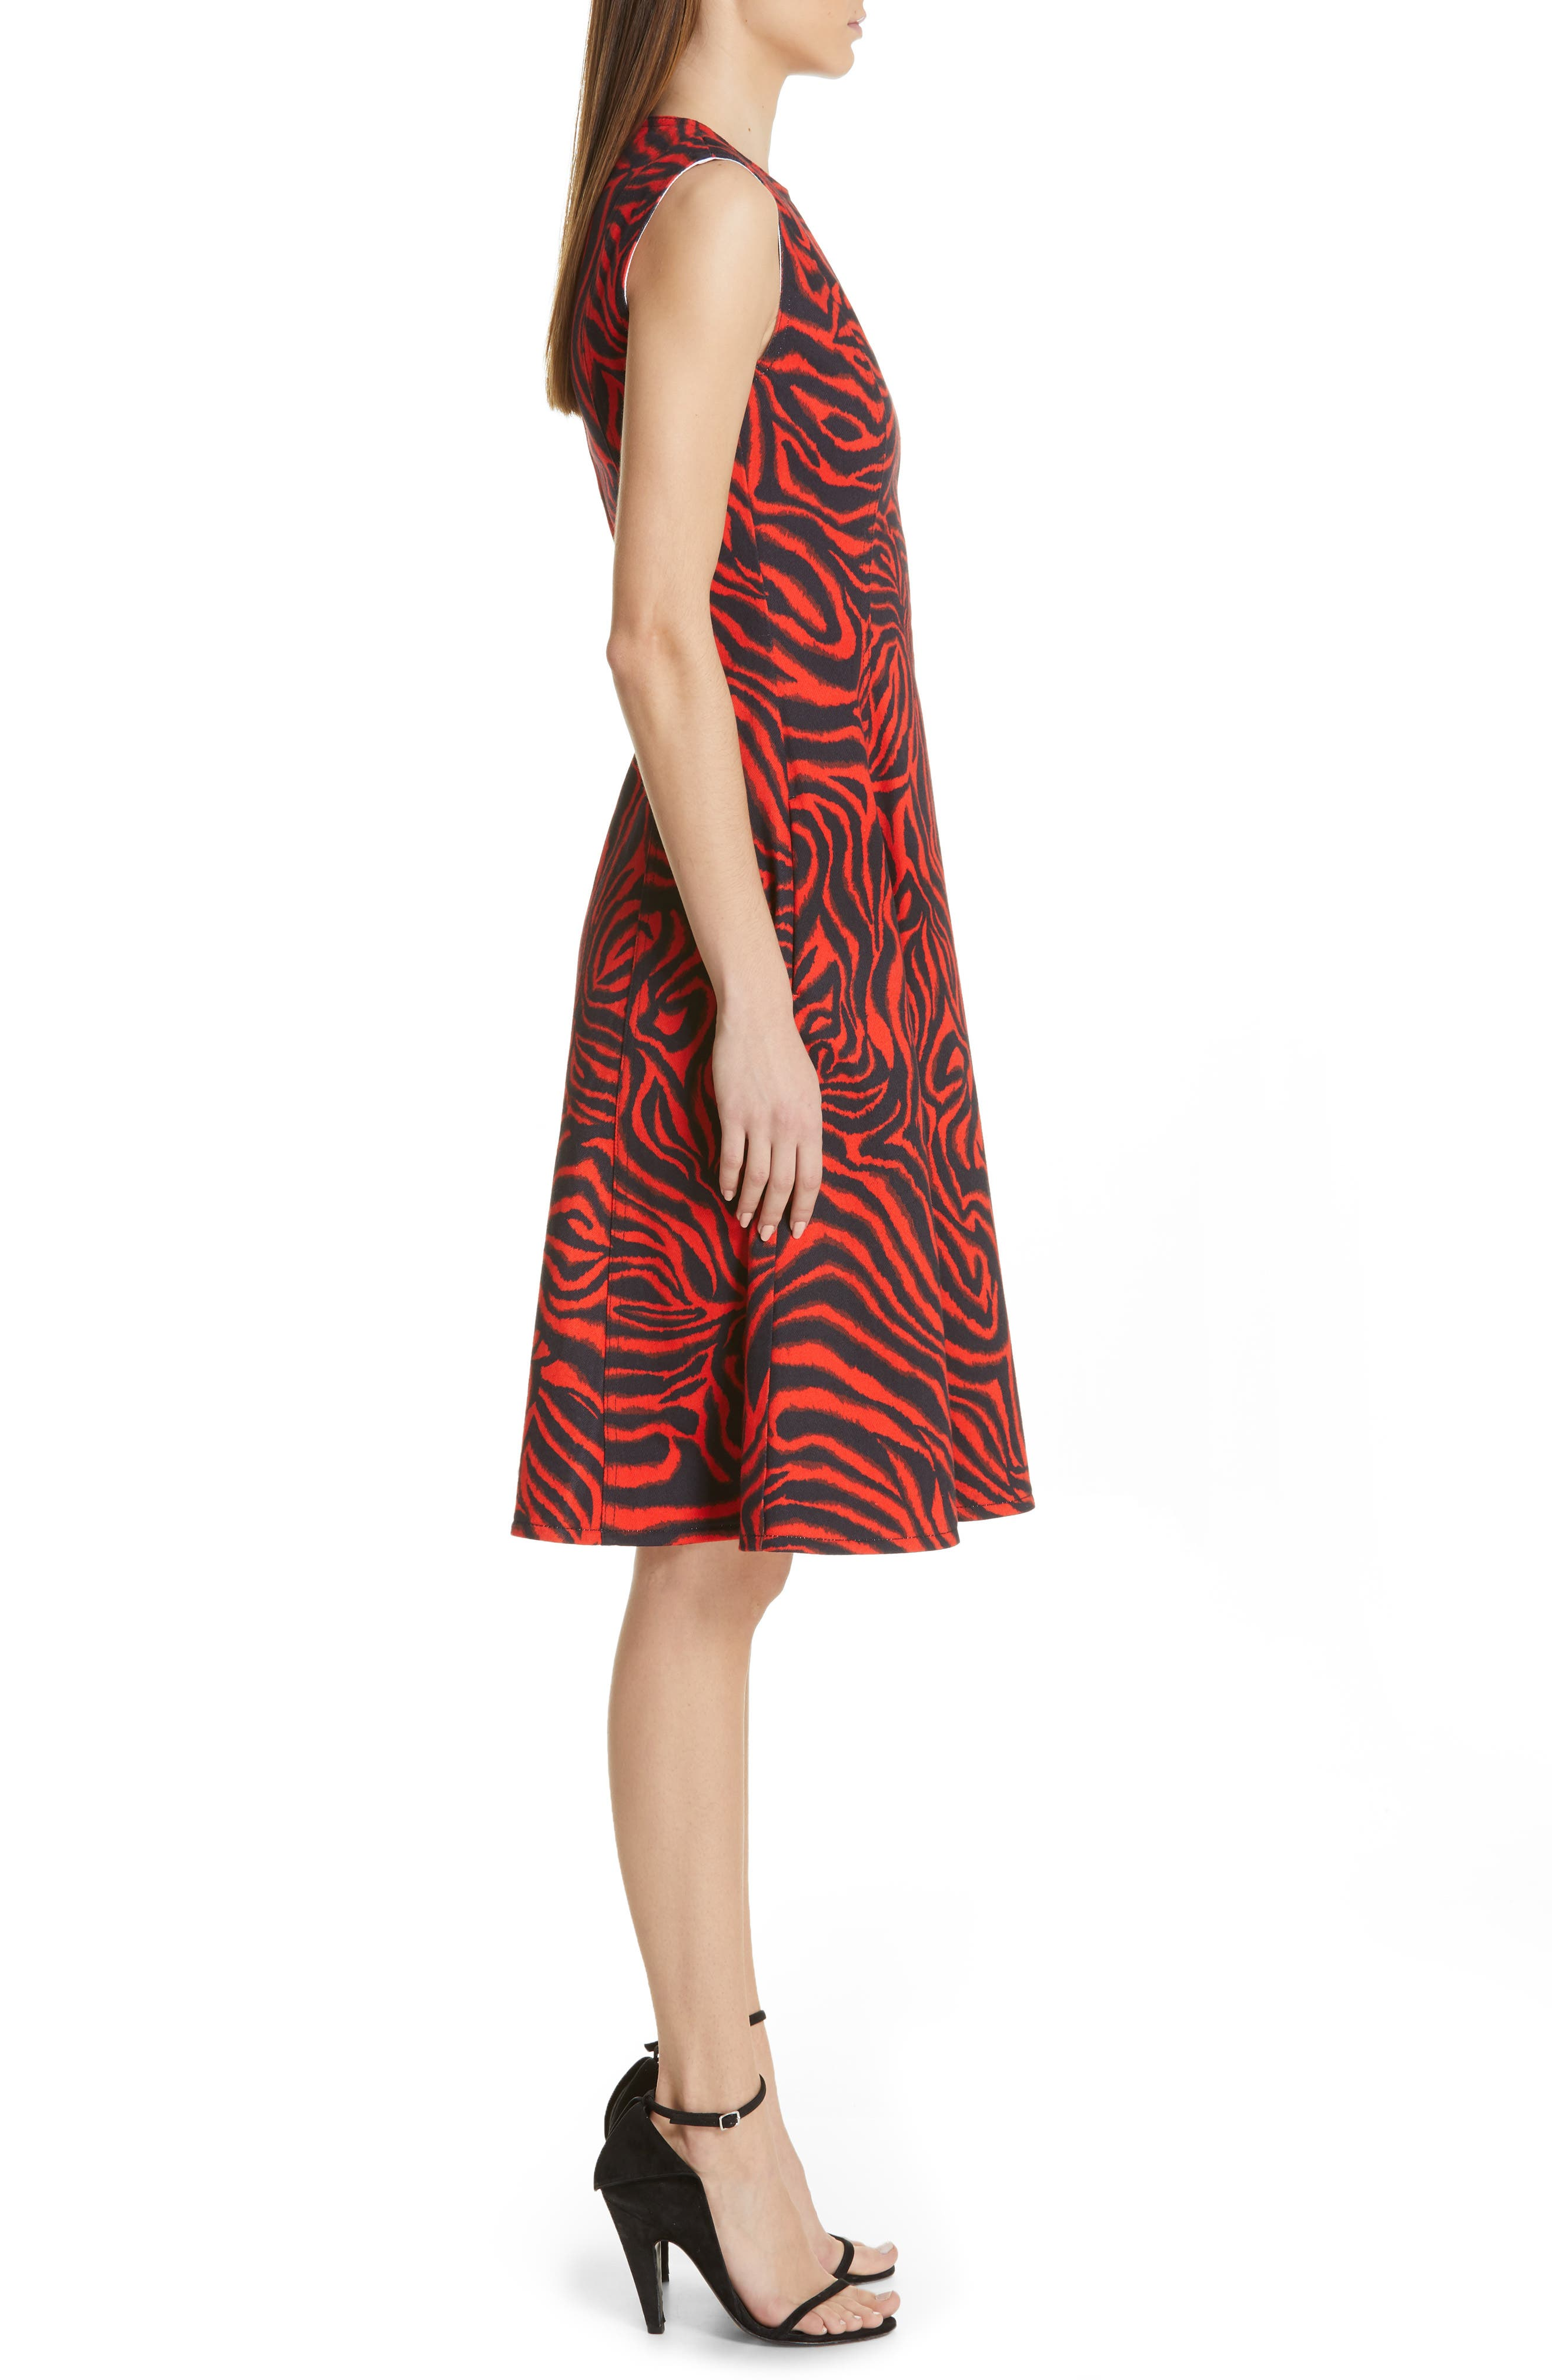 CALVIN KLEIN 205W39NYC, Zebra Print Denim A-Line Dress, Alternate thumbnail 4, color, RED ZEBRA